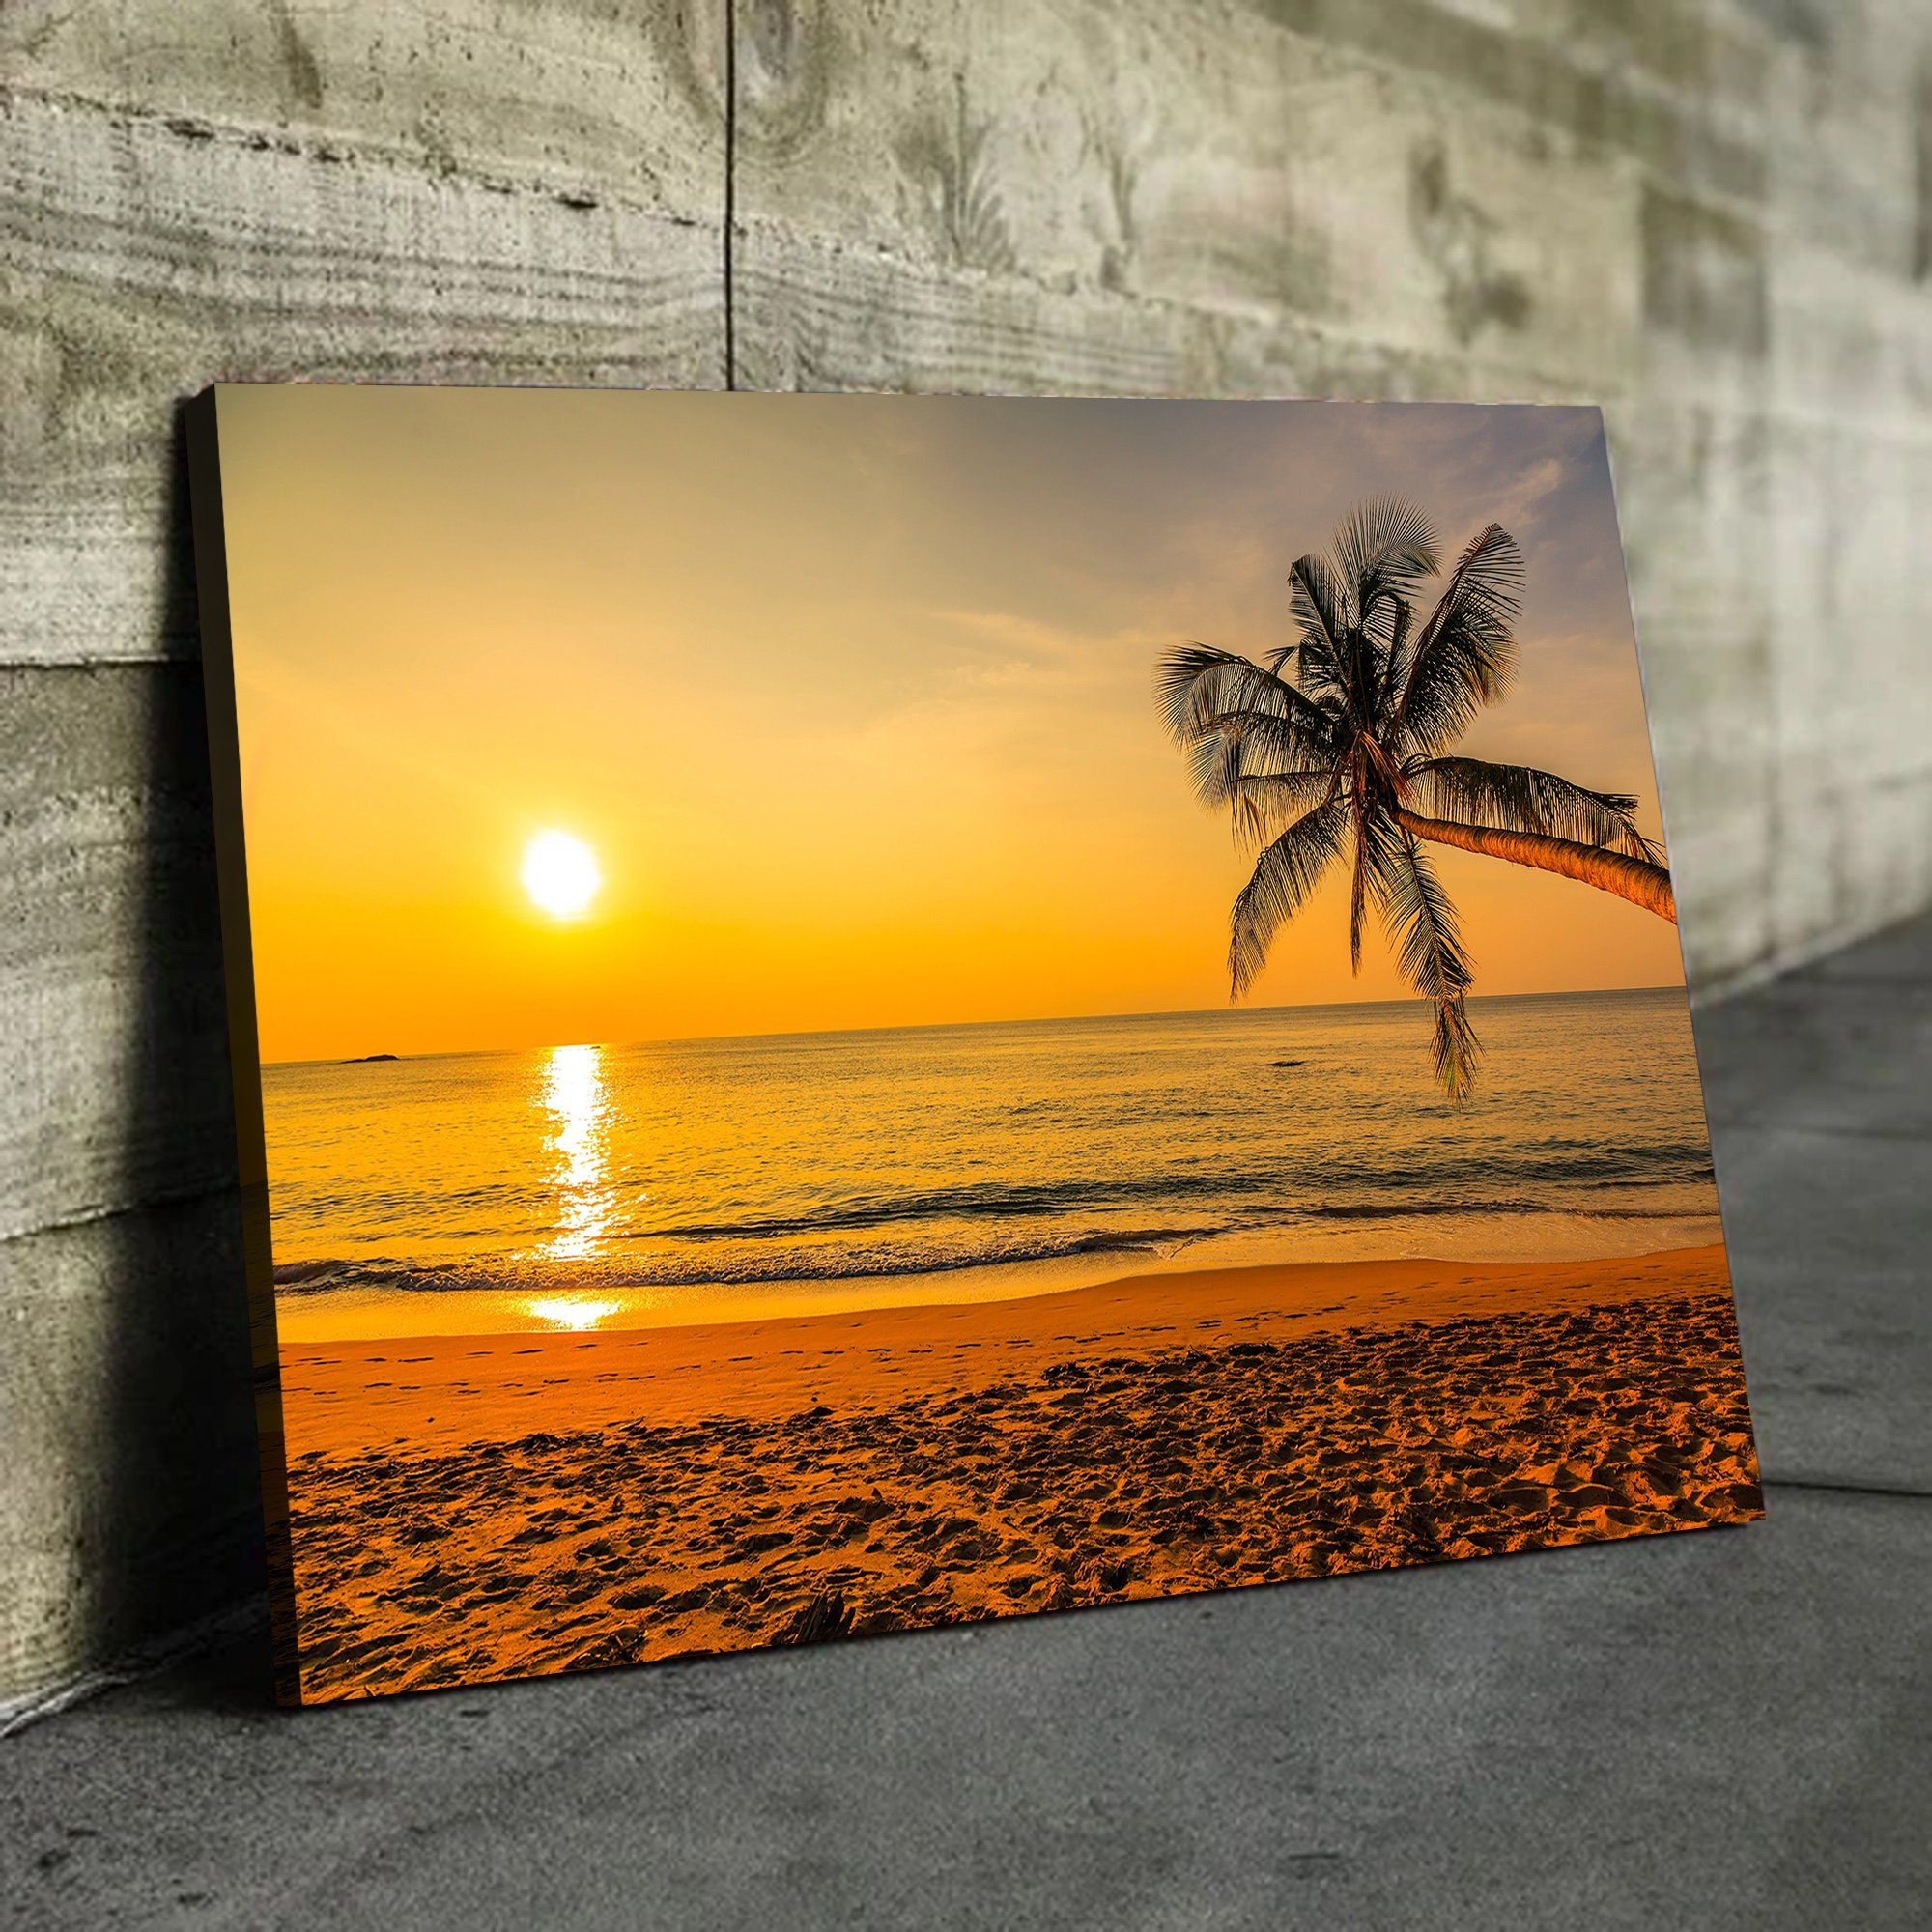 Sunset by the Beach home decor